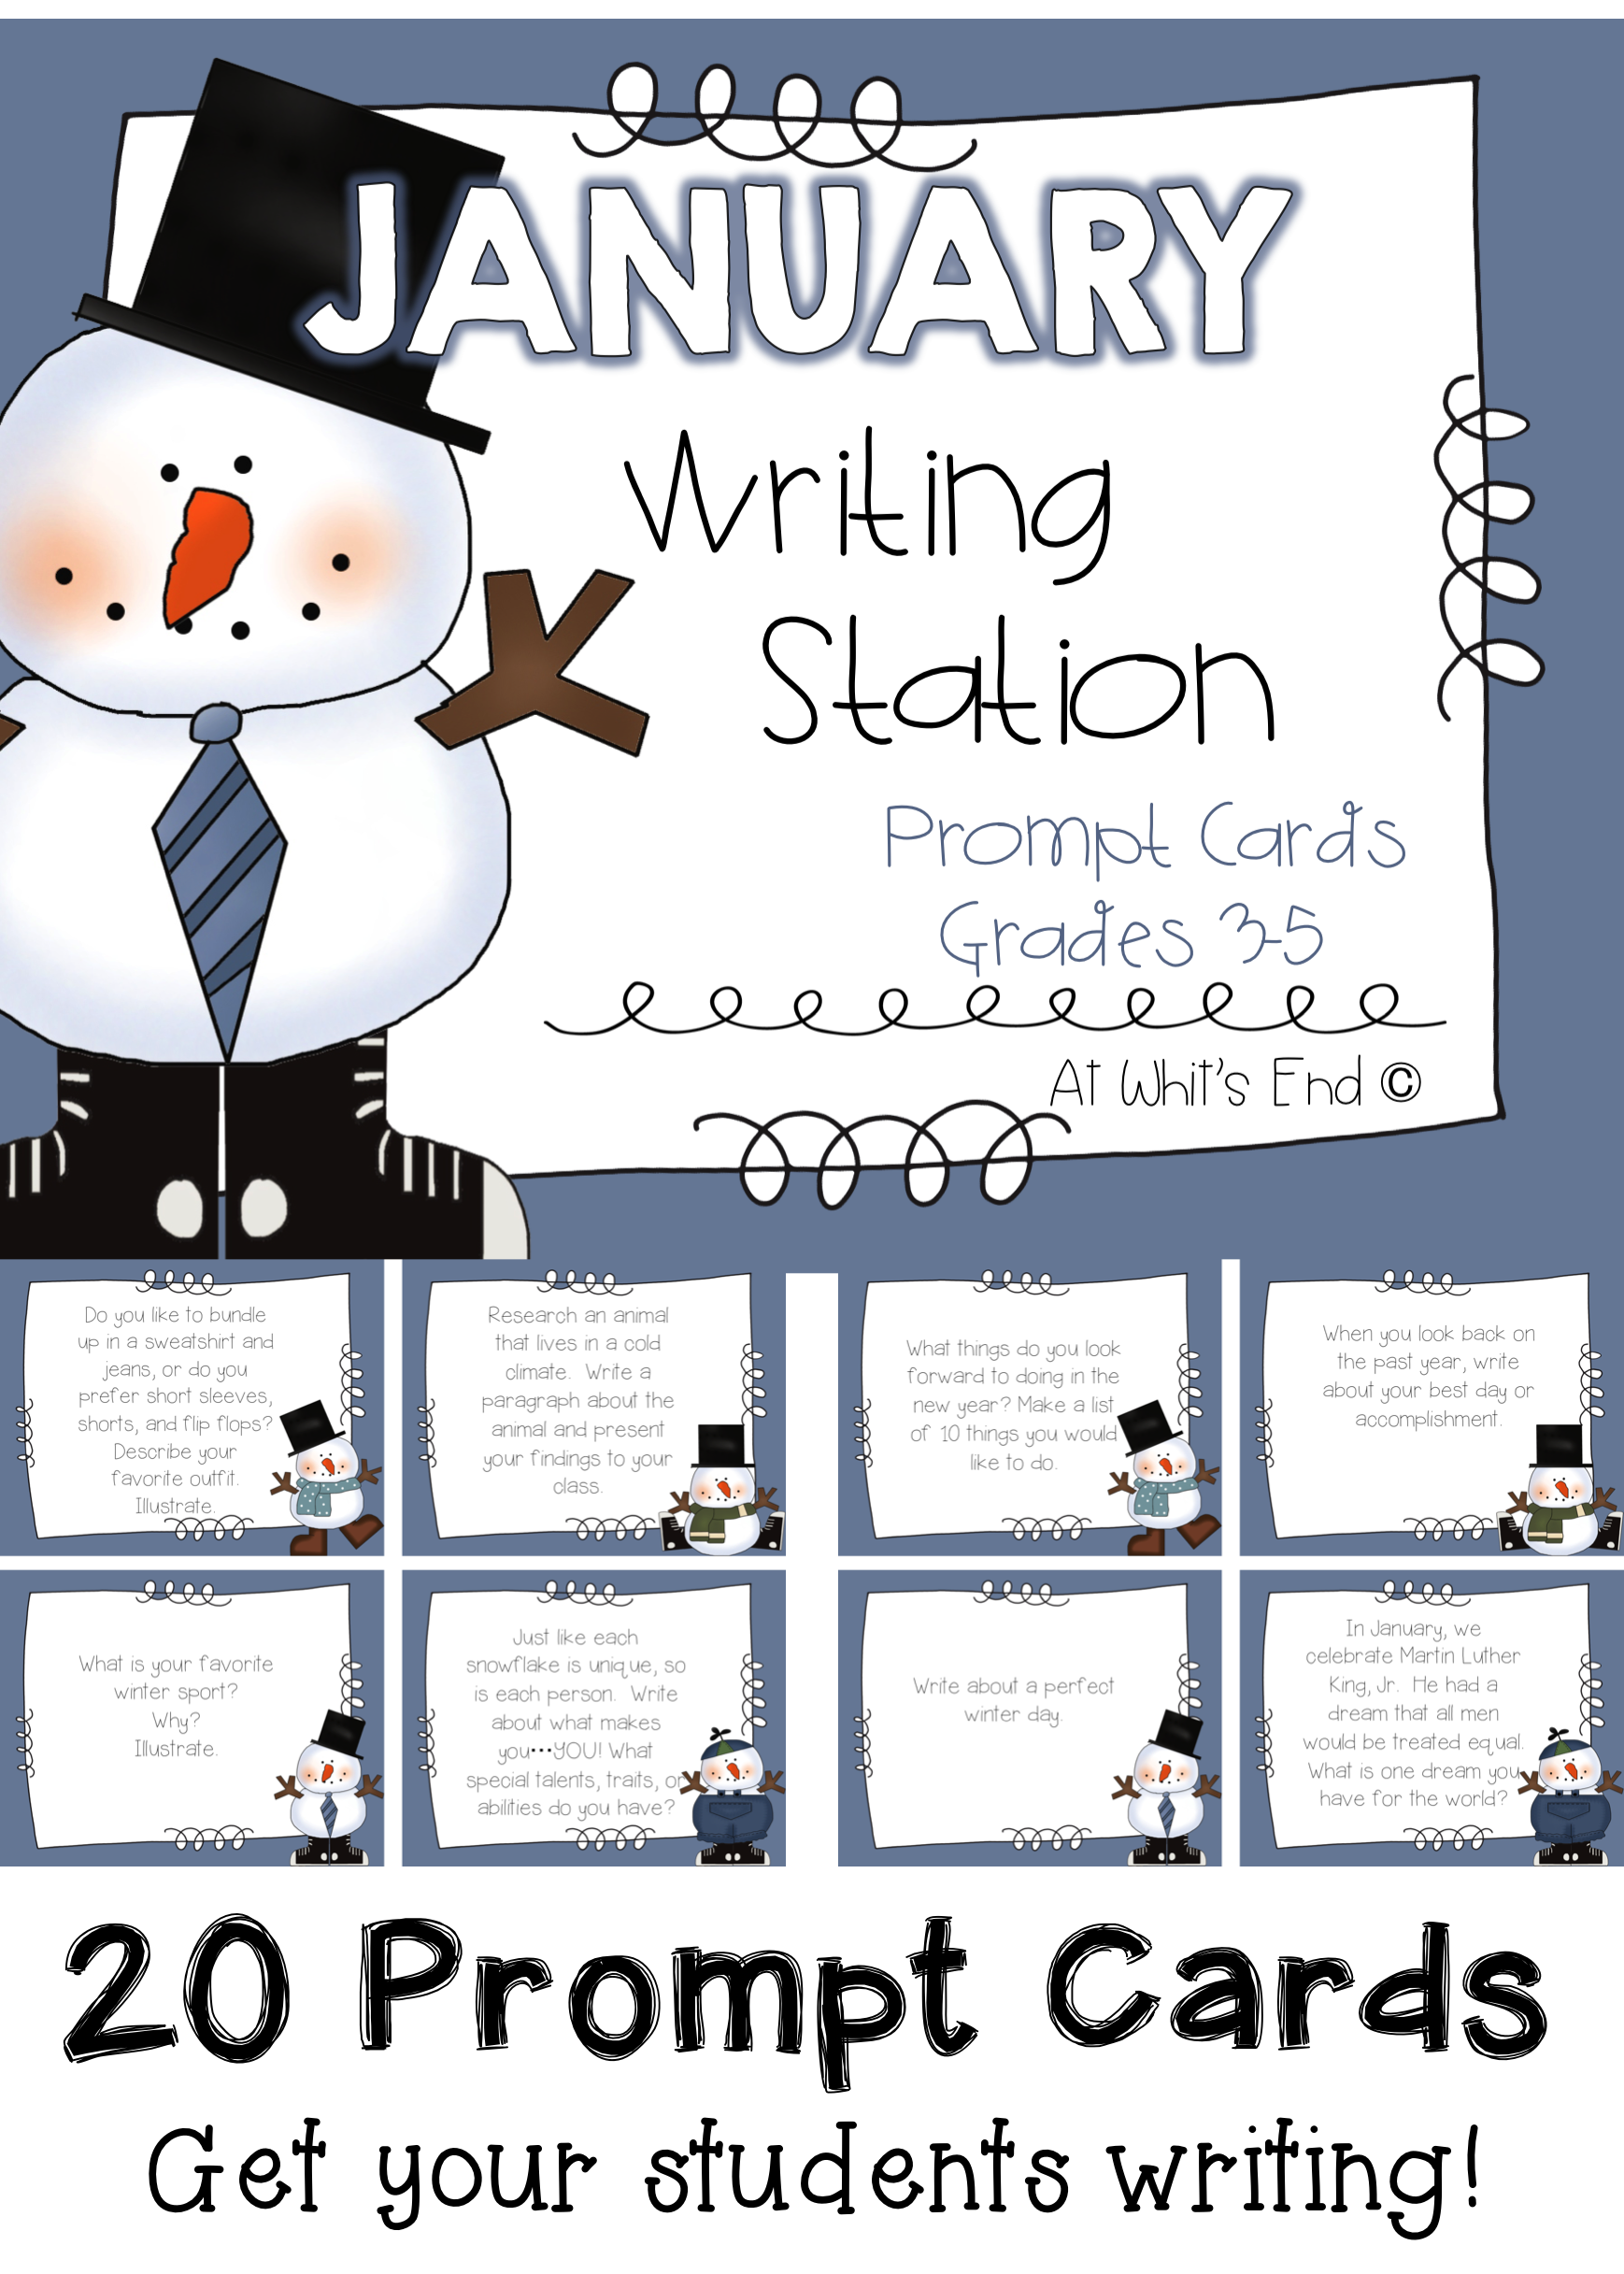 January Writing Station Prompt Cards Printables